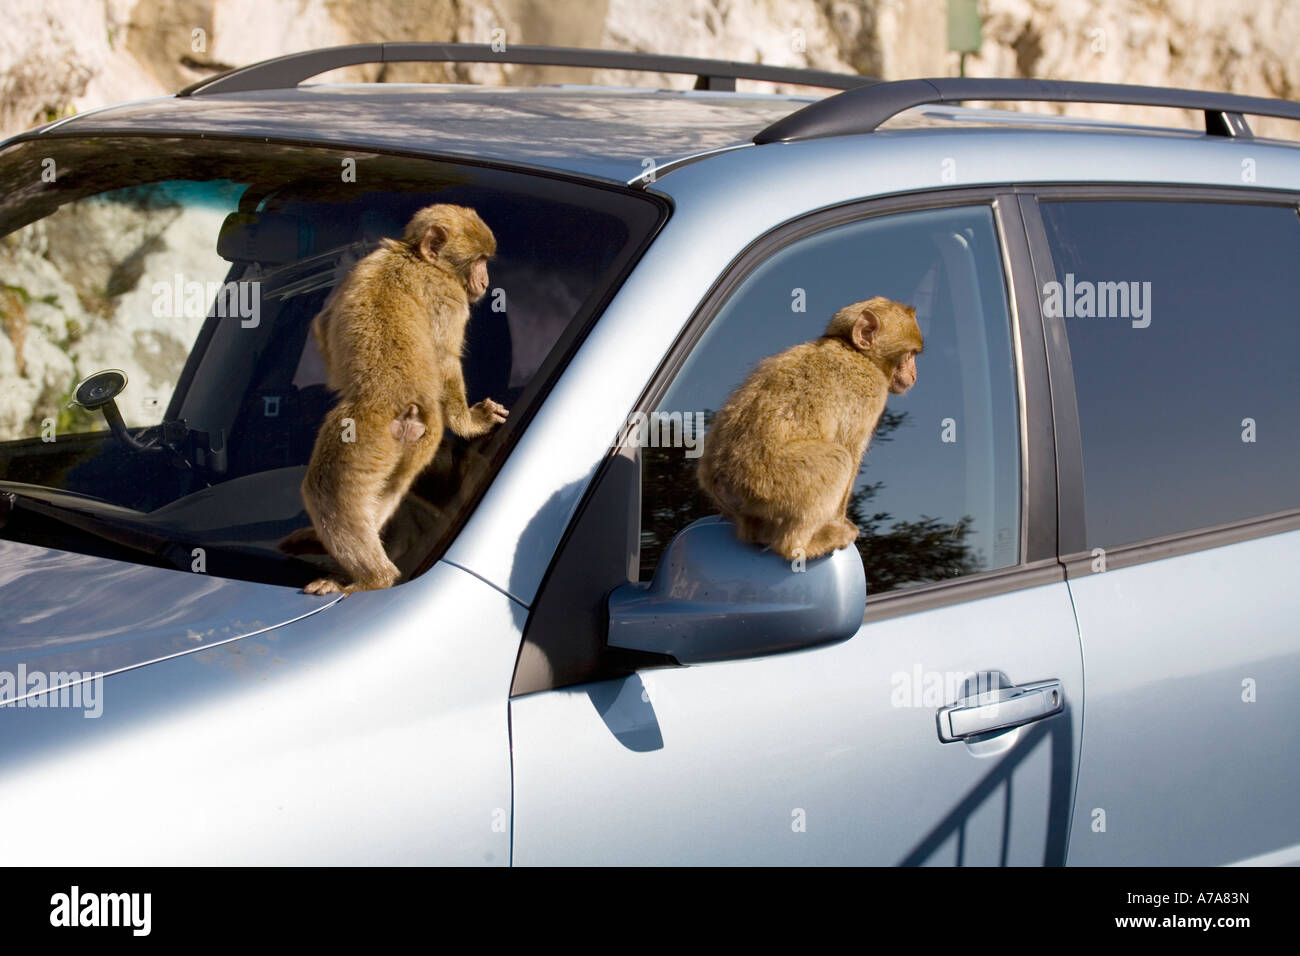 Two  Gibraltar Apes clambering over a car, Gibraltar, Europe - Stock Image